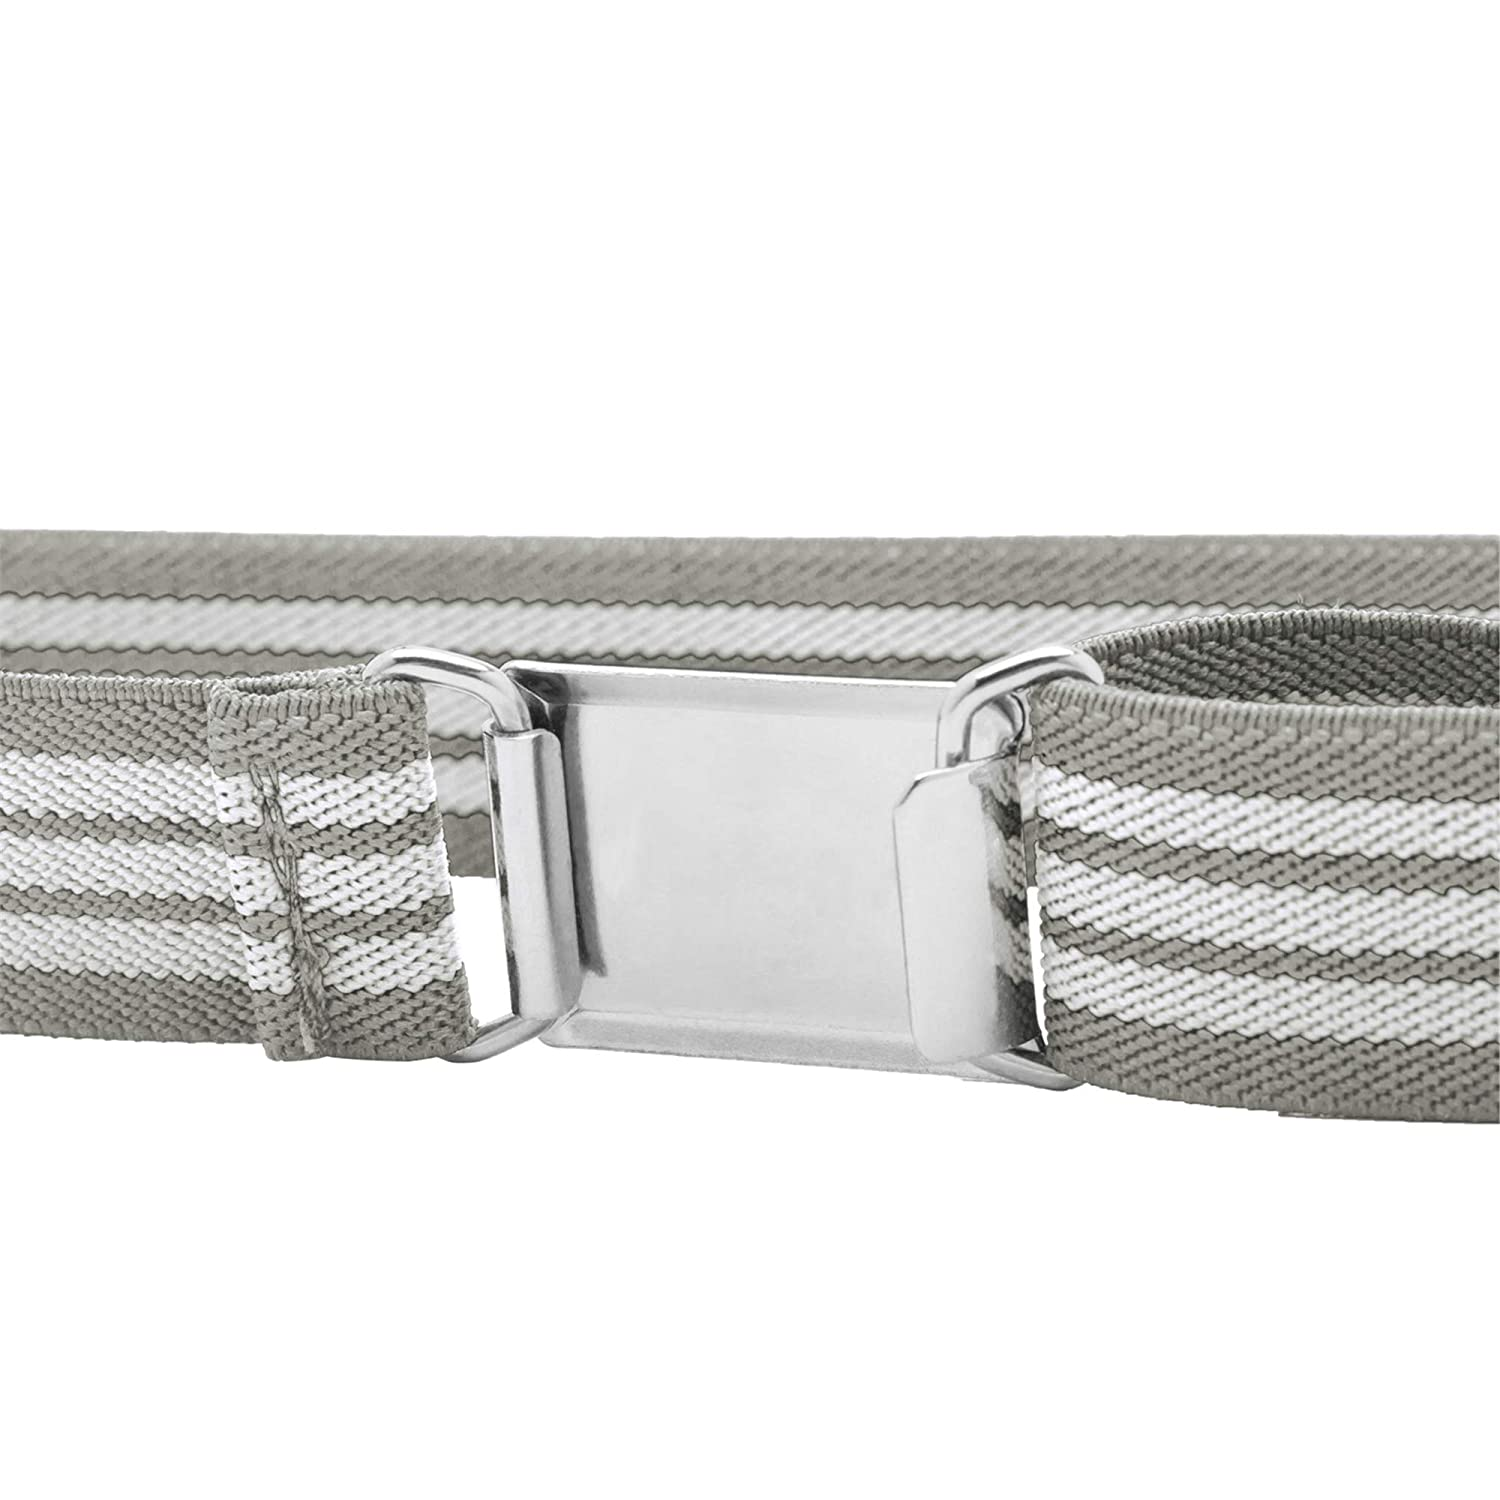 Buyless Fashion Kids Boys Adjustable Elastic Stretch Belt with Buckle 4 Pack 5122-PNK//RED//WHT//TAN